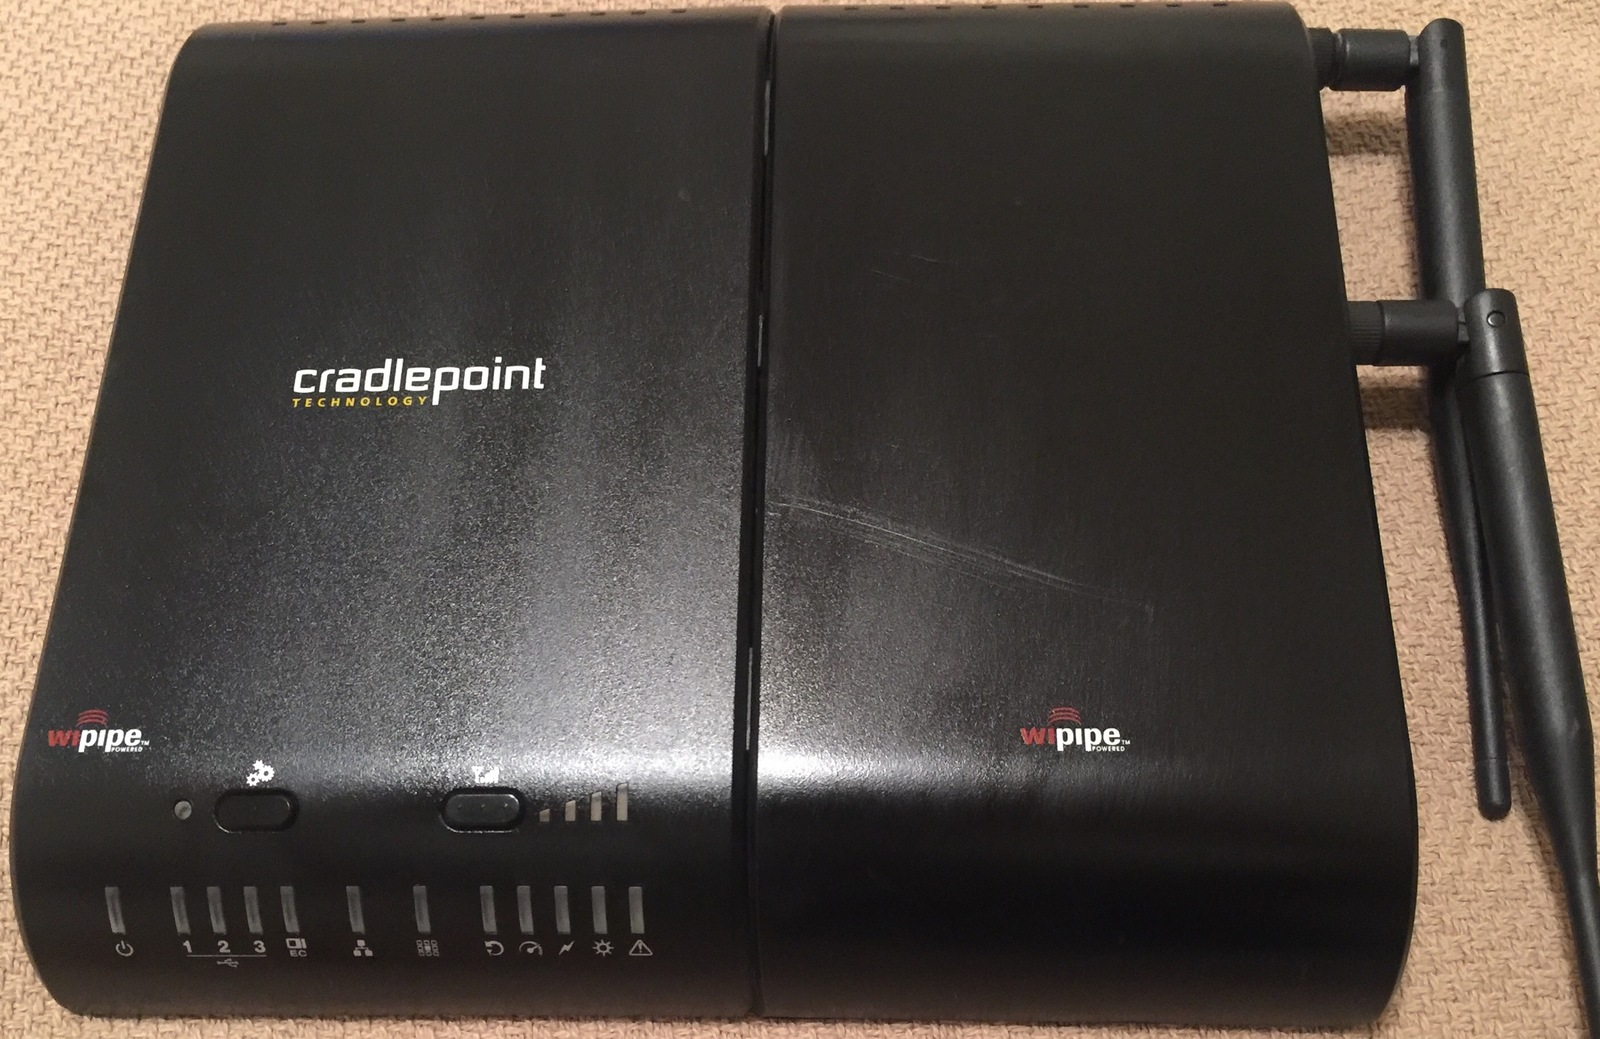 CRADLEPOINT WIMAX WINDOWS 8 DRIVERS DOWNLOAD